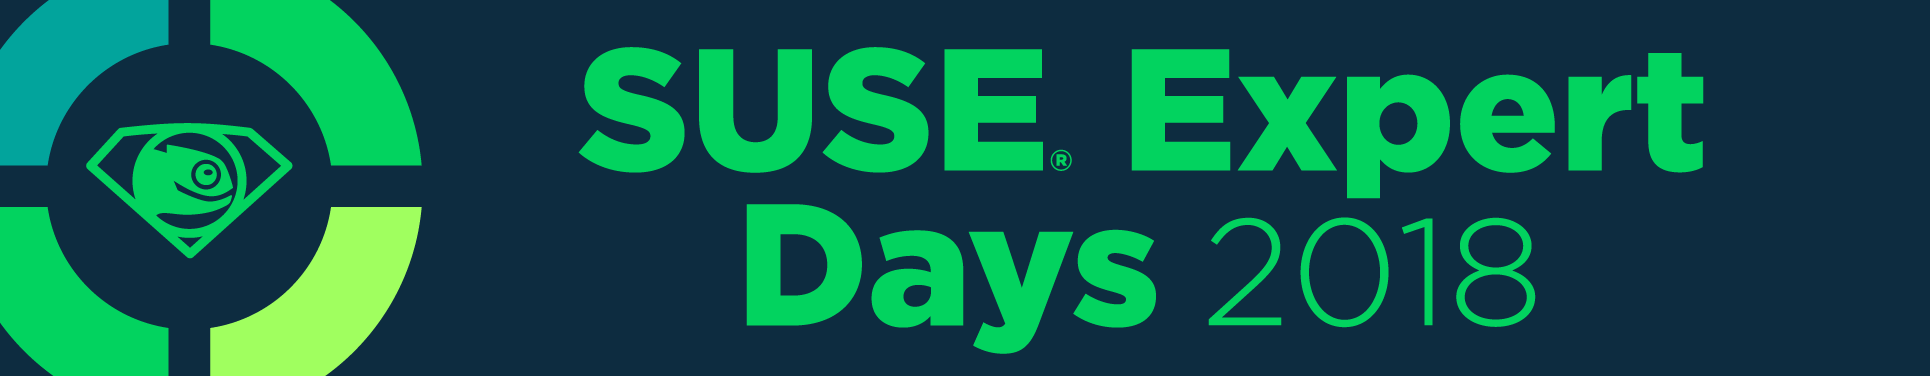 2018 EMEA SUSE Expert Days - Warsaw